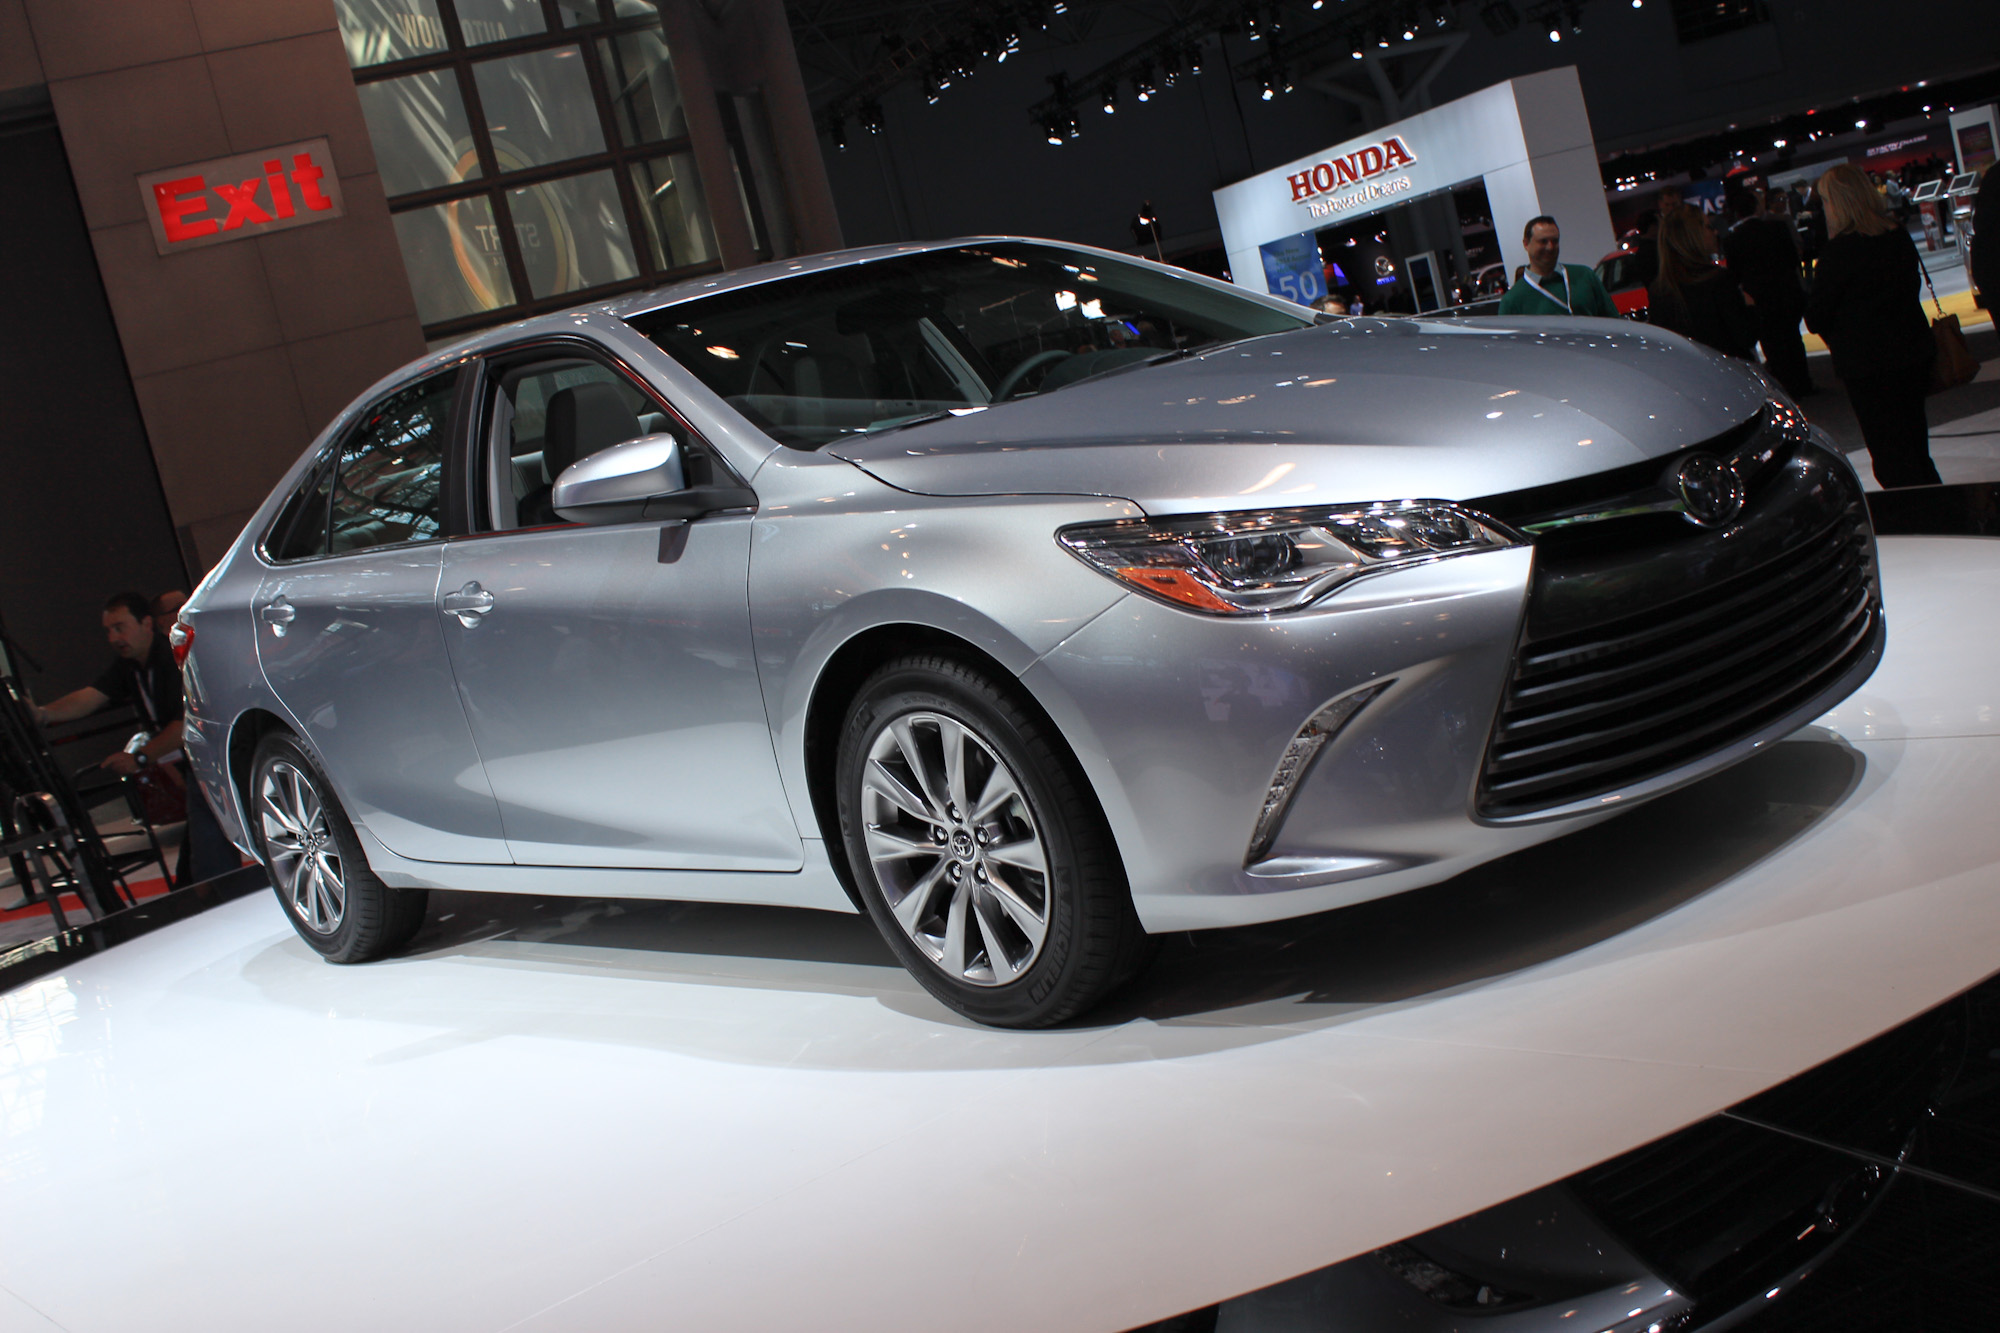 pictures-of-toyota-camry-vii-2016-59807